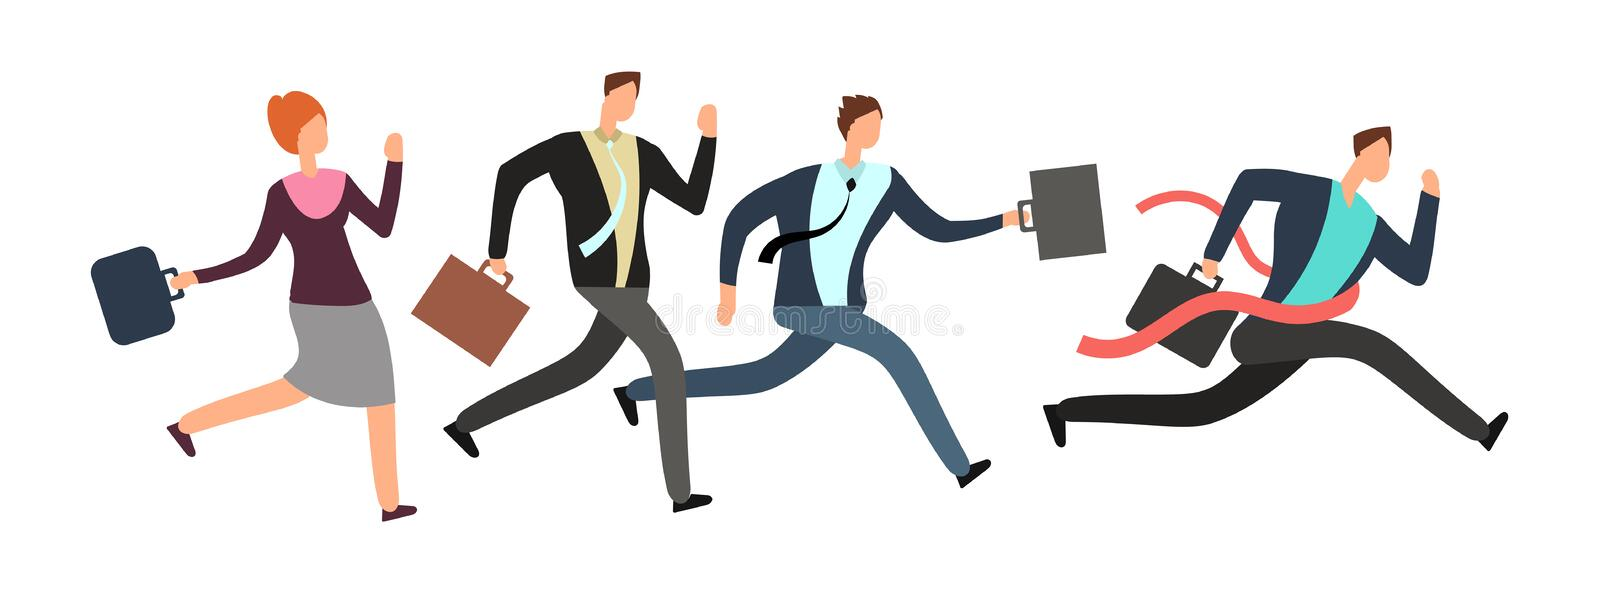 Business people running with leader crossing finish line. Teamwork and leadership vector concept stock illustration